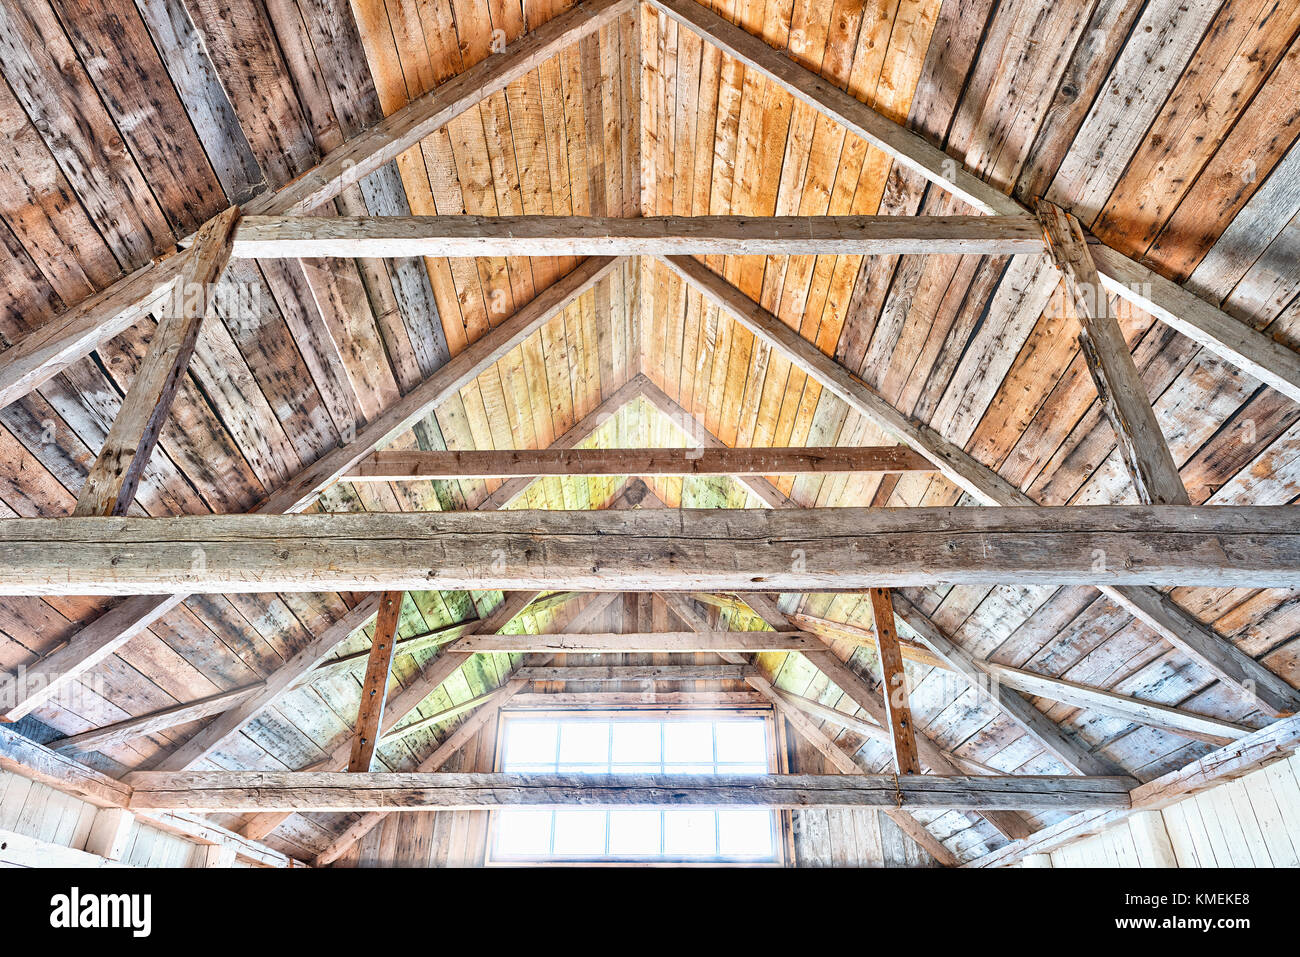 Vibrant Colorful Wooden Interior Of Old Abandoned House With Window Sunlight Sun Rays During